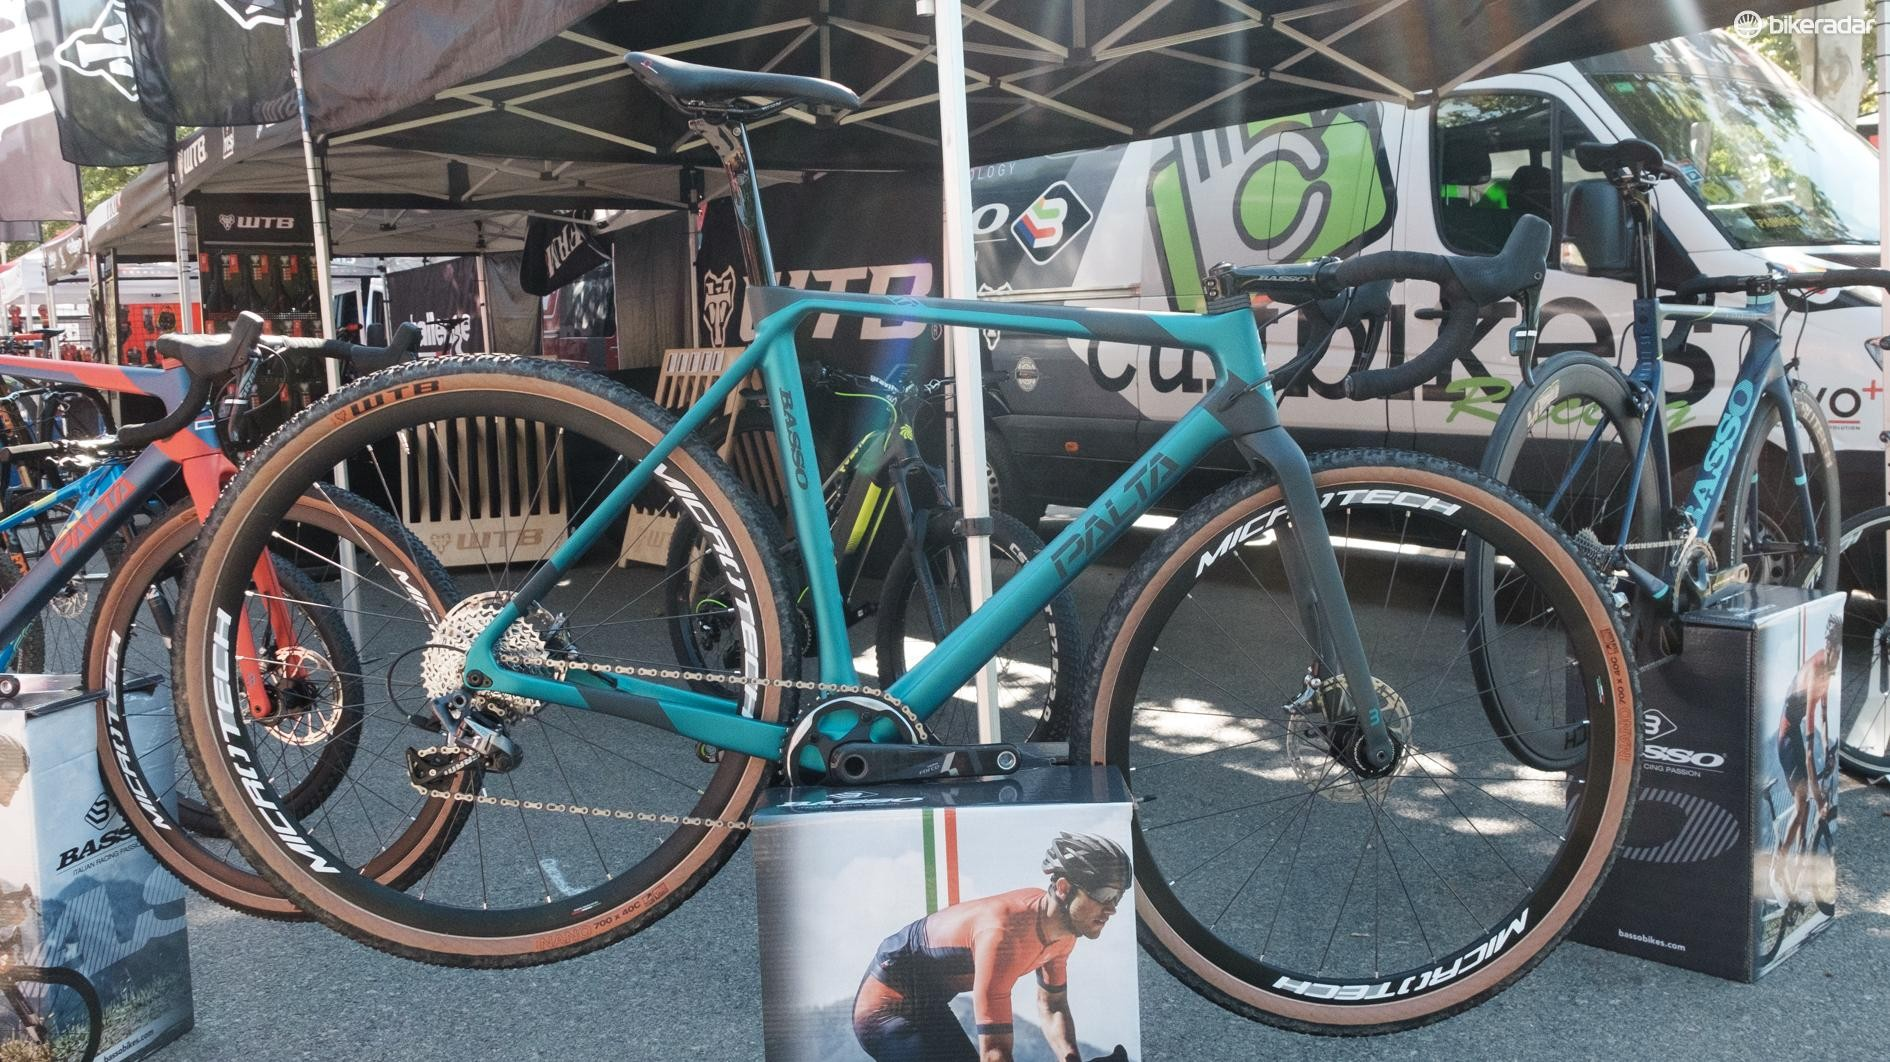 Basso launched a new gravel bike at the event